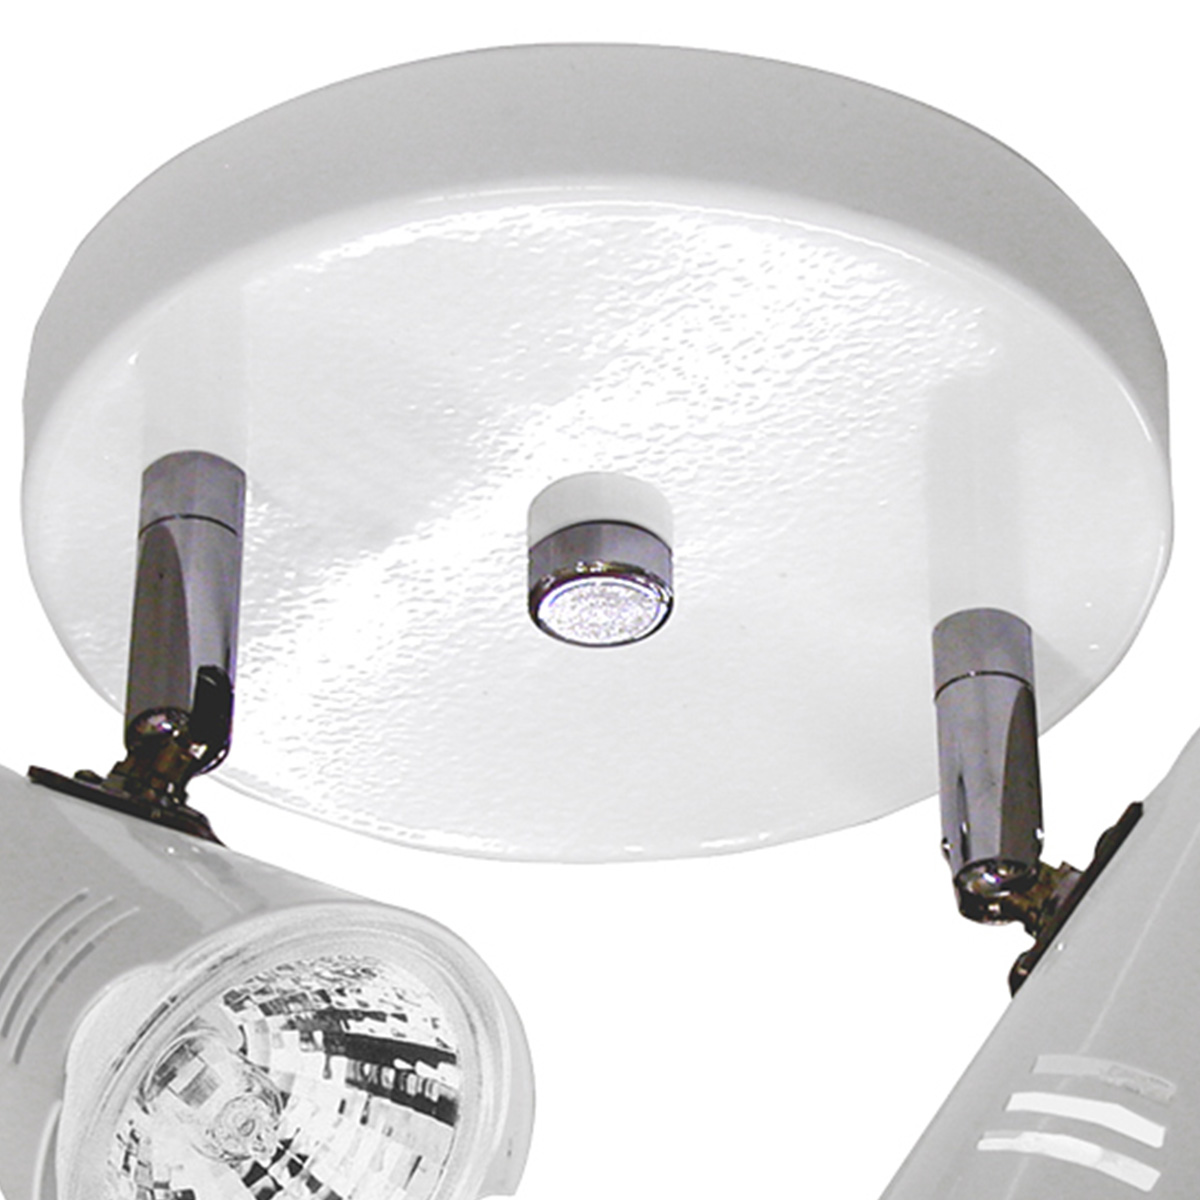 Spot Base Lince Aco Regulavel Base Gu-10 2 Lamp. Max. 50w Branco